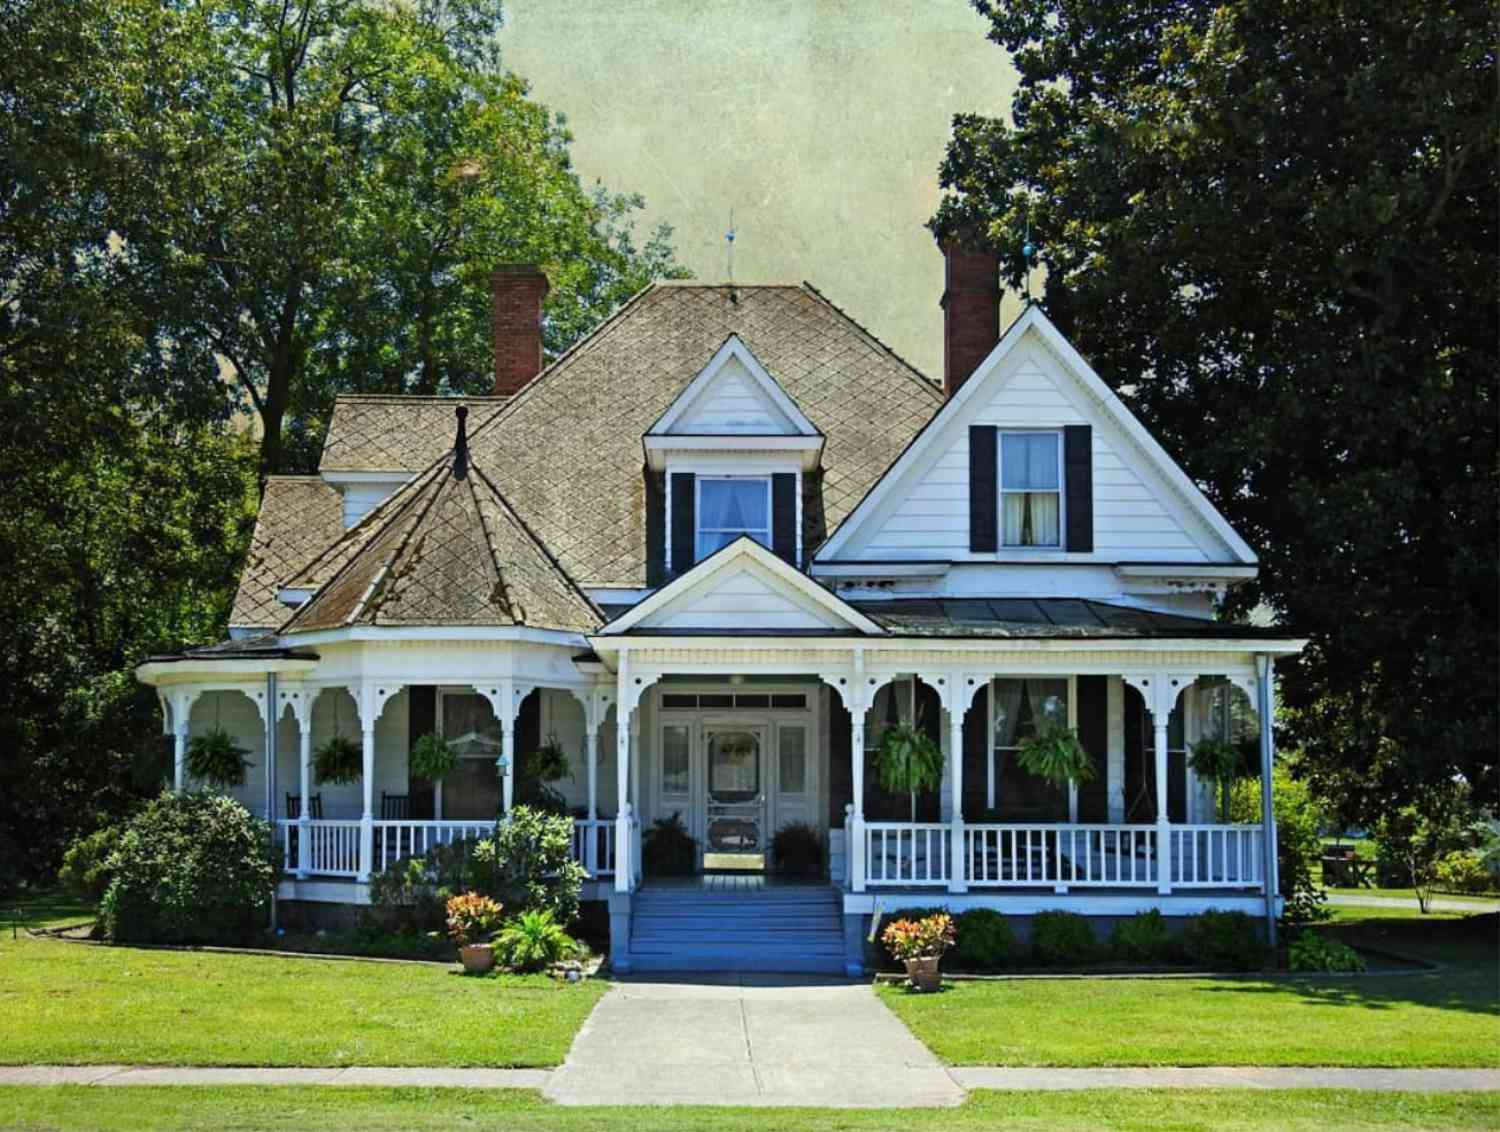 Get Inspired by the Many Styles of Victorian Homes